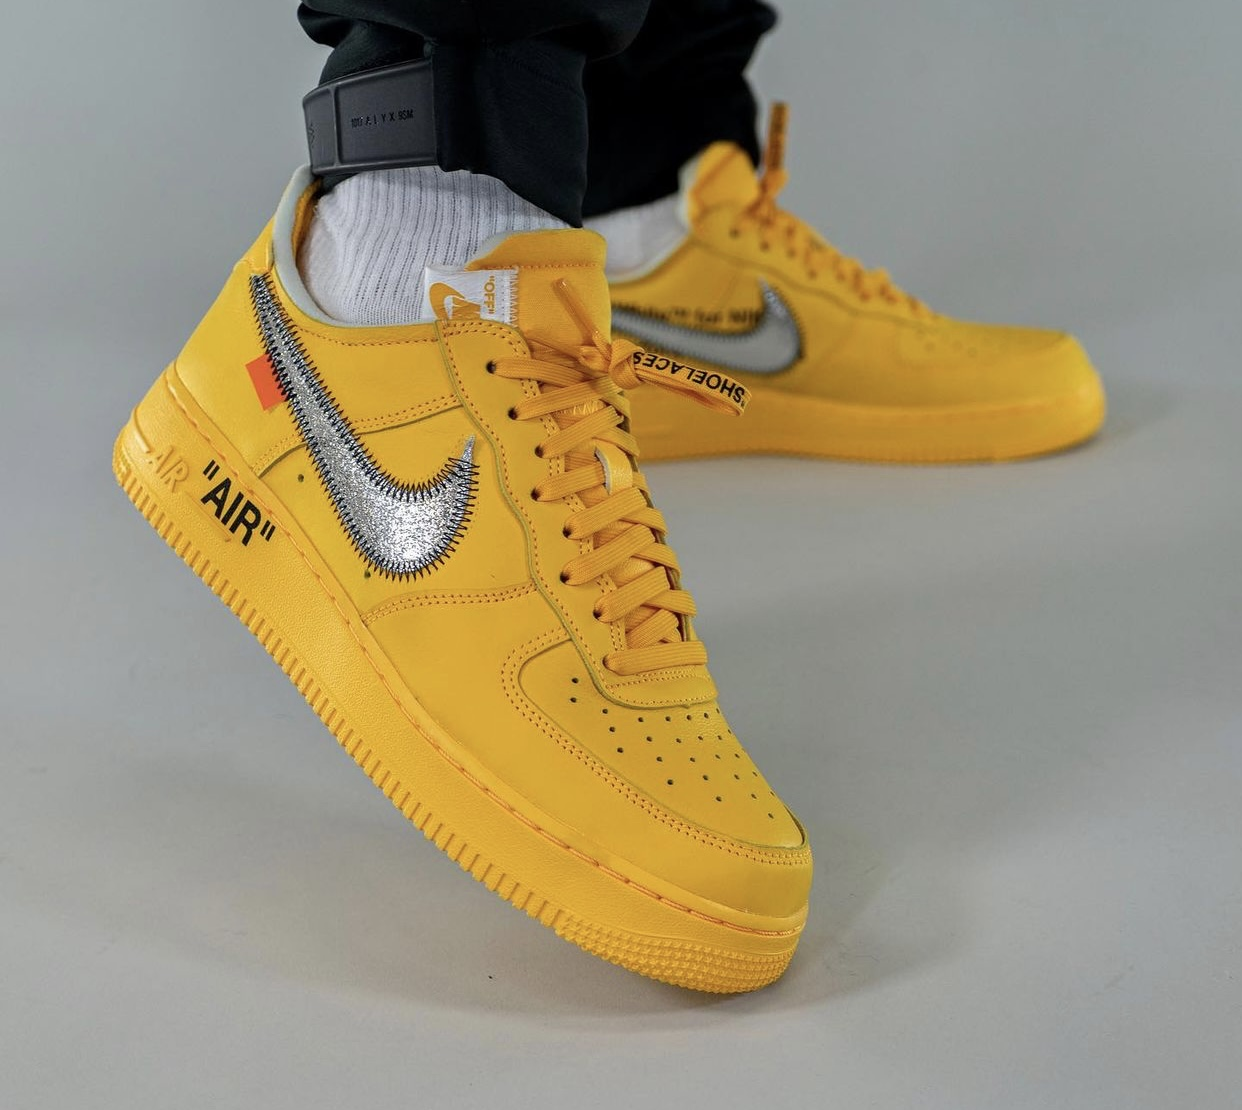 Off-White x Nike Air Force 1 Low University Gold DD1876-700 Release Date On-Feet